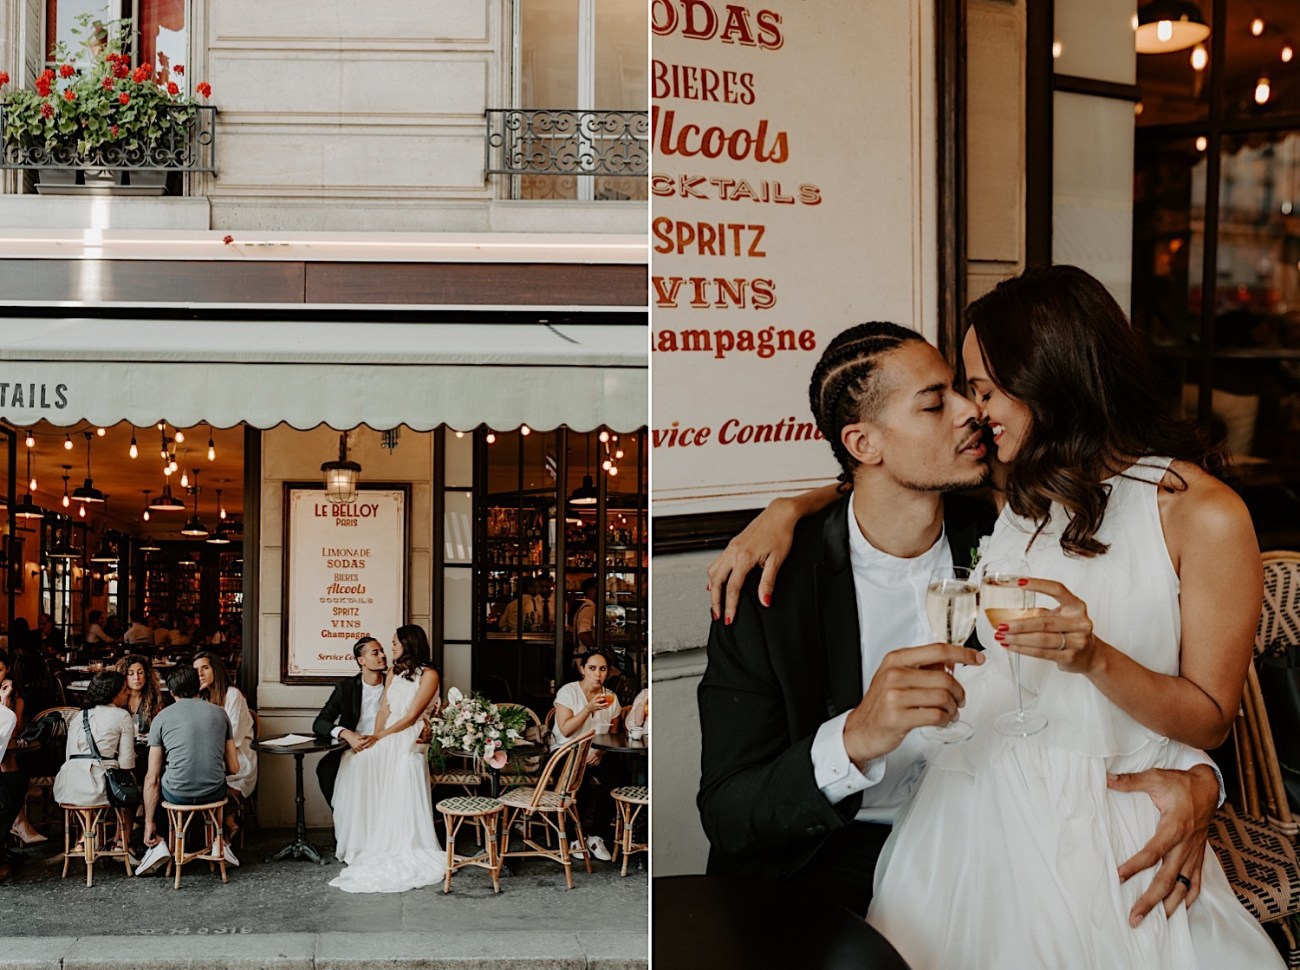 Paris Wedding Photos Paris Wedding Photographer Paris Photographe De Marriage Pont Alexandre Wedding Photos Anais Possamai Photography 11